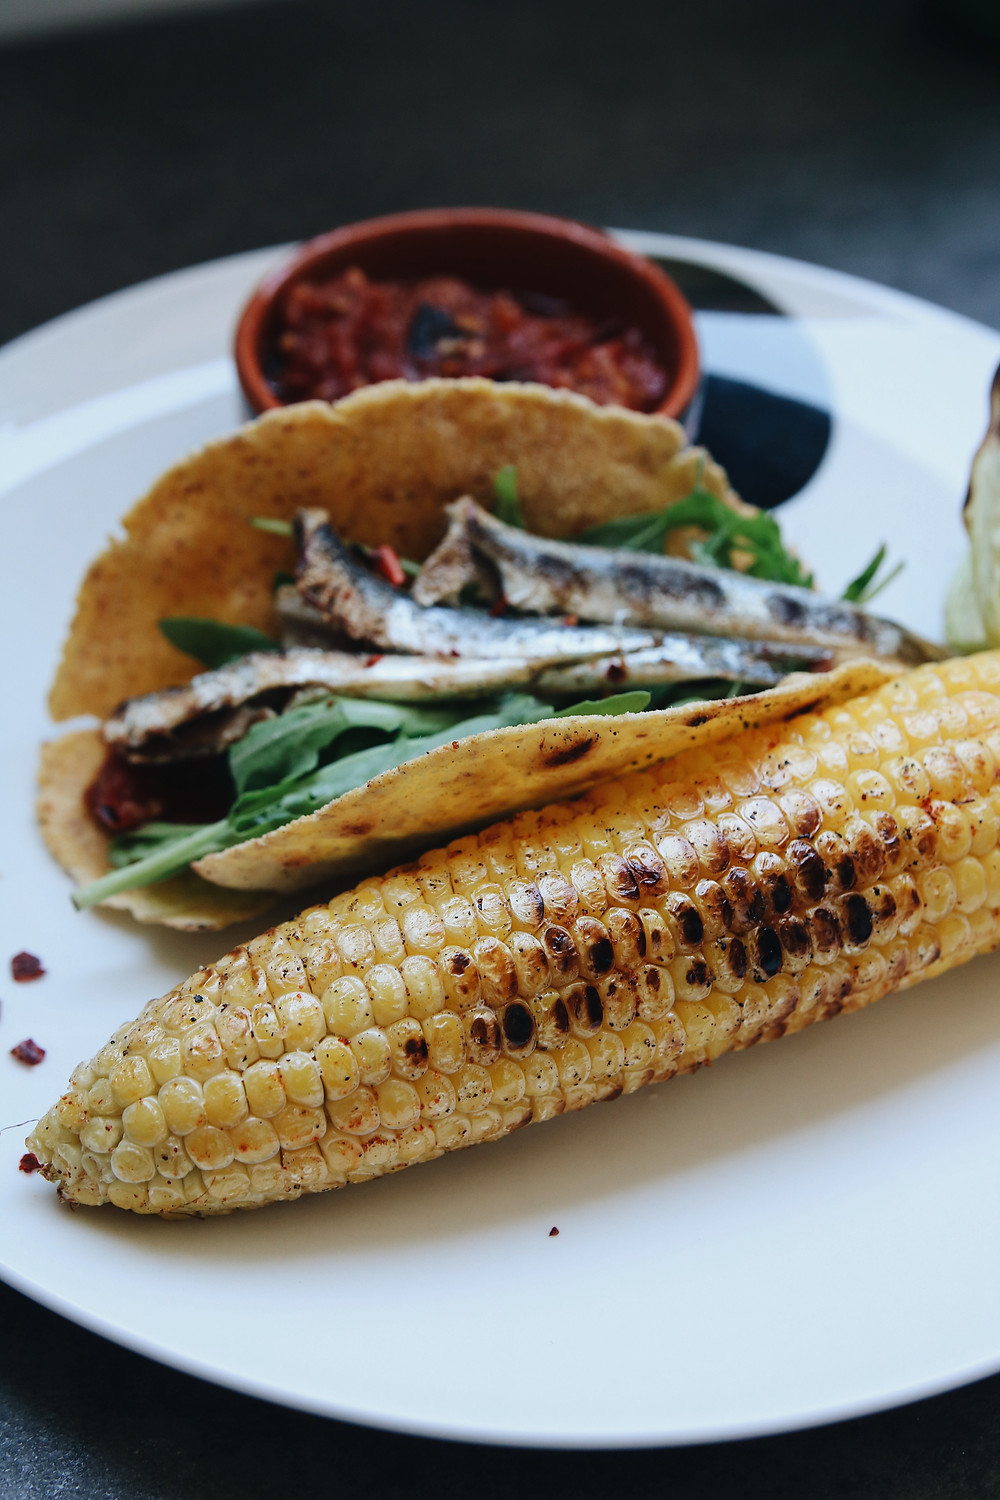 A grilled corn cob on a plate, fish taco and salsa in the background.